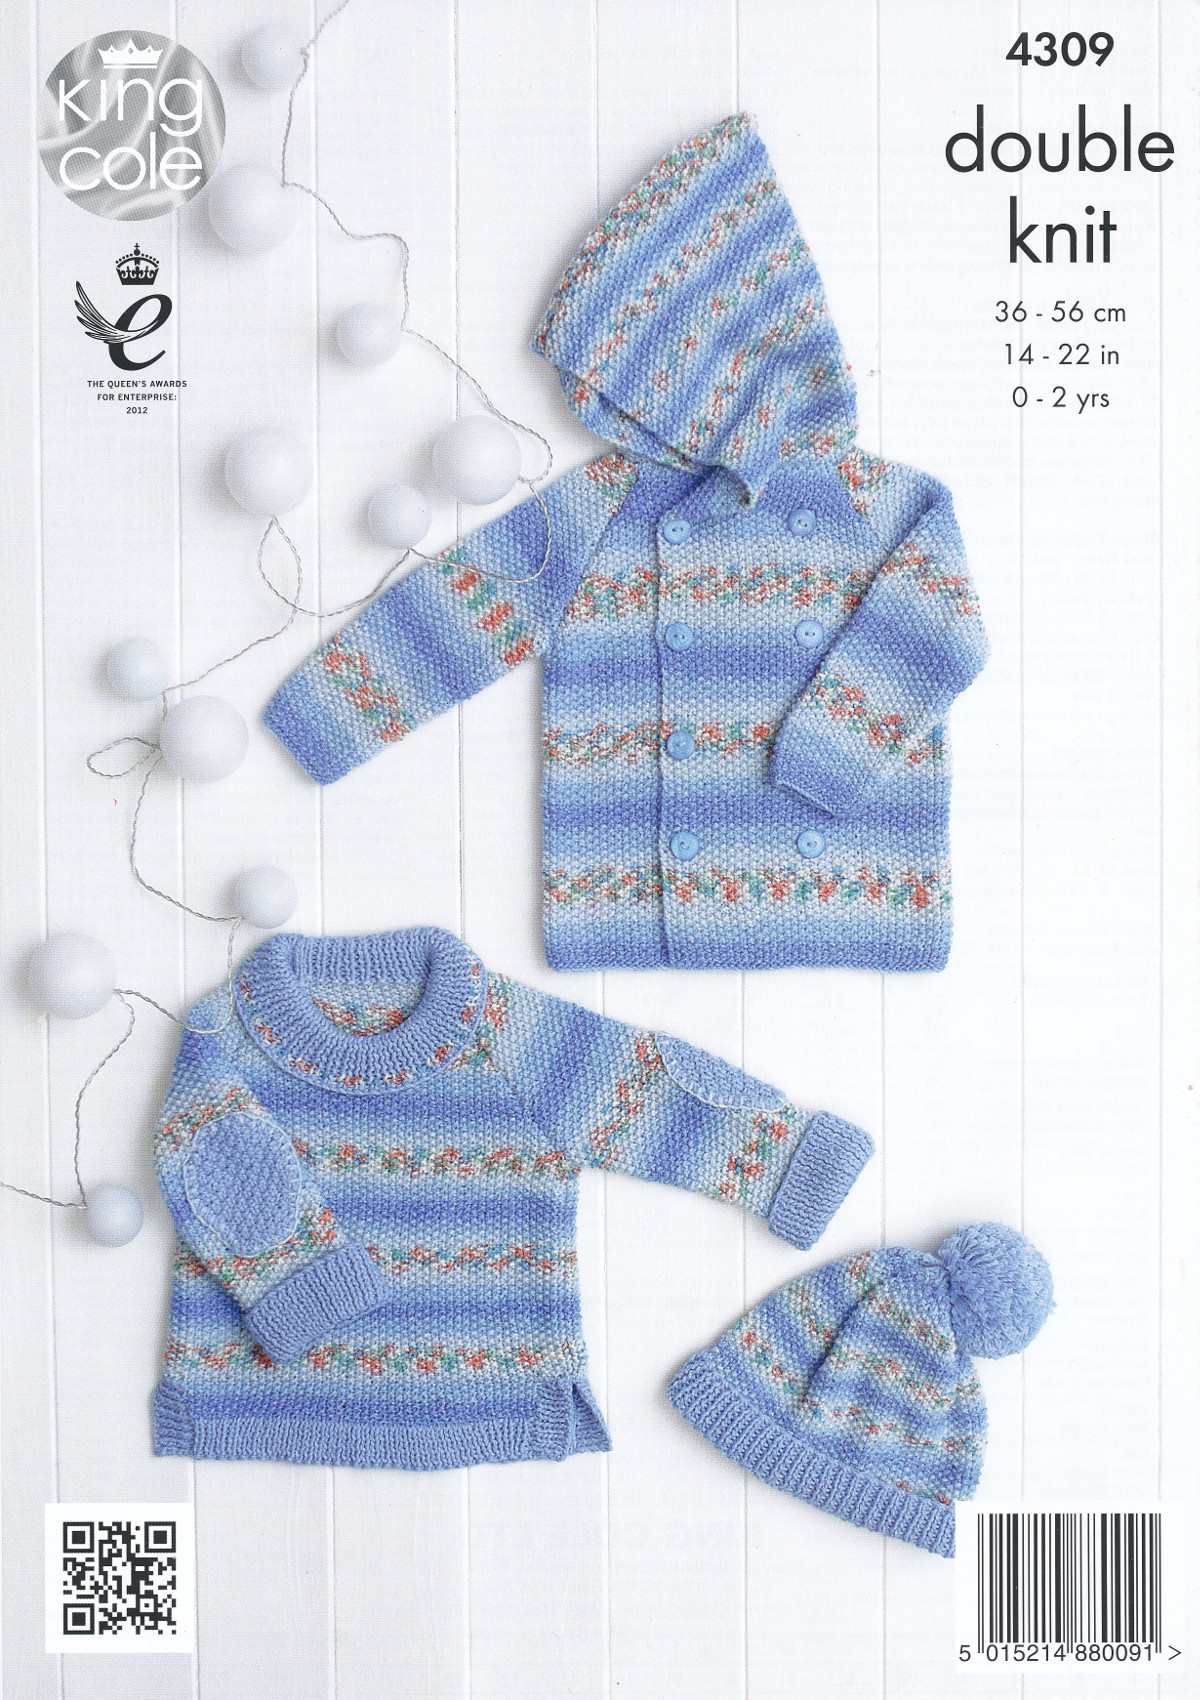 Double Knitting Hat Pattern : King Cole Double Knitting Pattern Sweater Jacket & Hat Set Baby Drifter D...